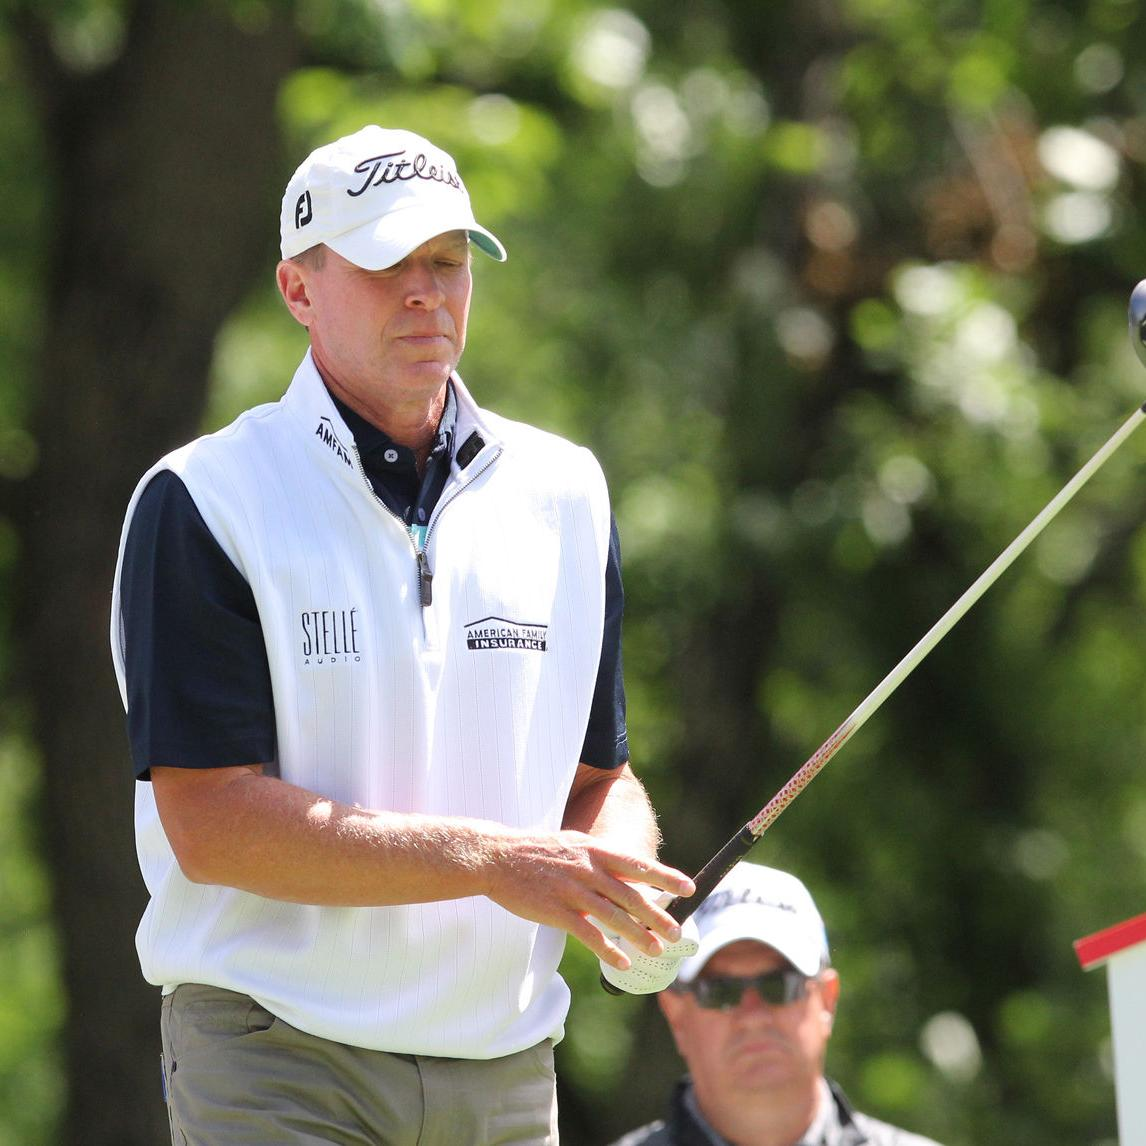 The burden of a six-year winless streak behind him, Madison's Steve Stricker eager to tee it up at Rapiscan Systems Championship